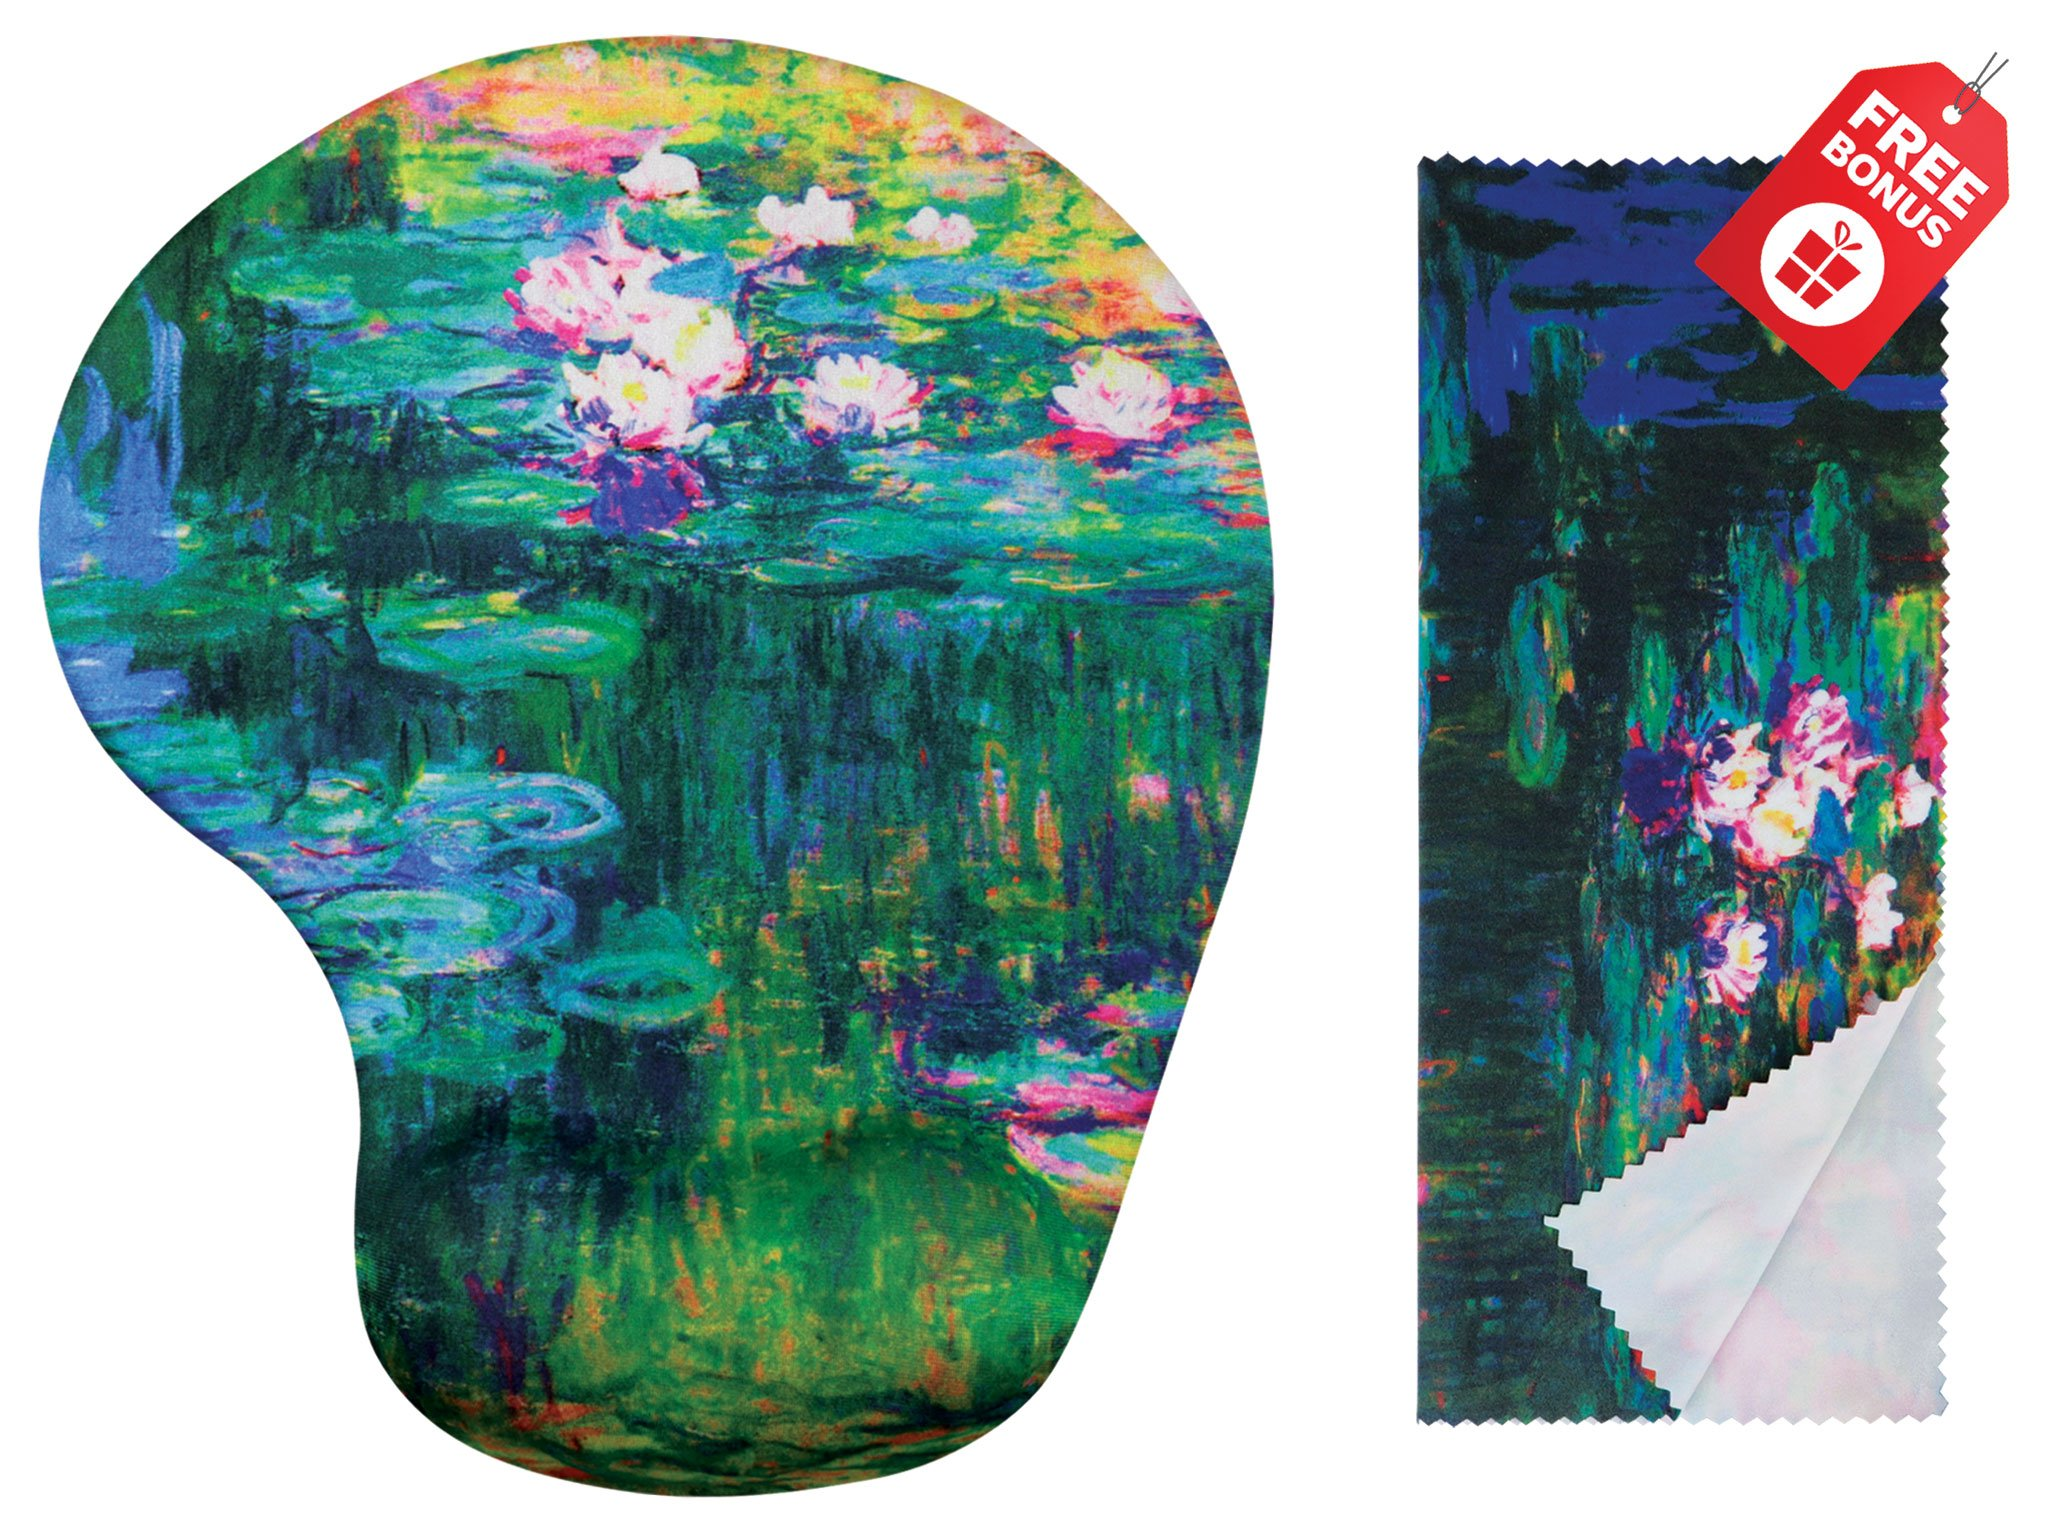 Claude Monet Water Lilies VI Ergonomic Design Mouse Pad with Wrist Support Gel Hand Rest. Matching Microfiber Cleaning Cloth for Glasses, Cars & Electronics. Mouse Pad for Laptop, PC Computer and iMac